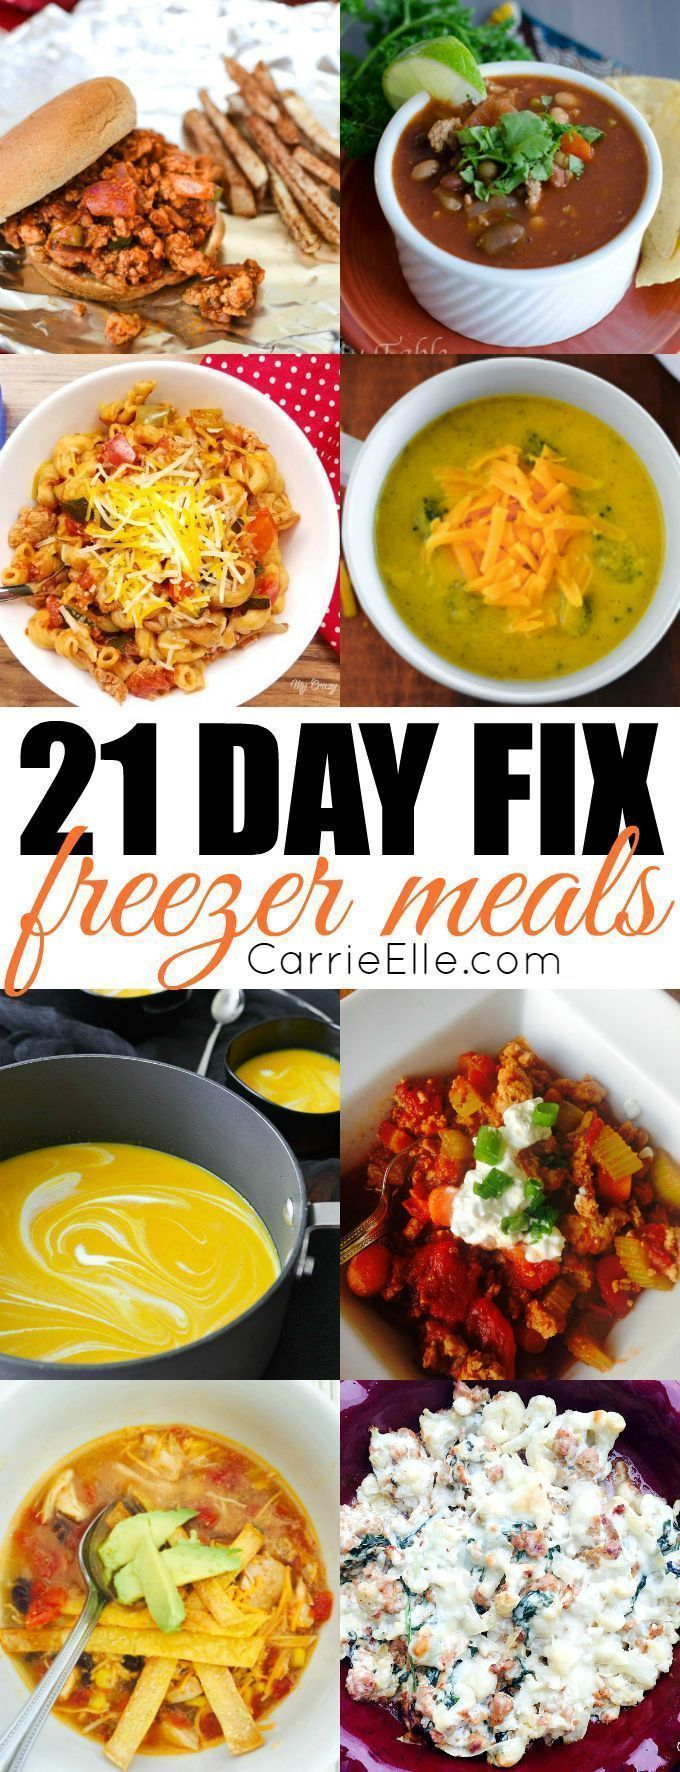 21 Day Fix Freezer Meals http://healthyquickly.com